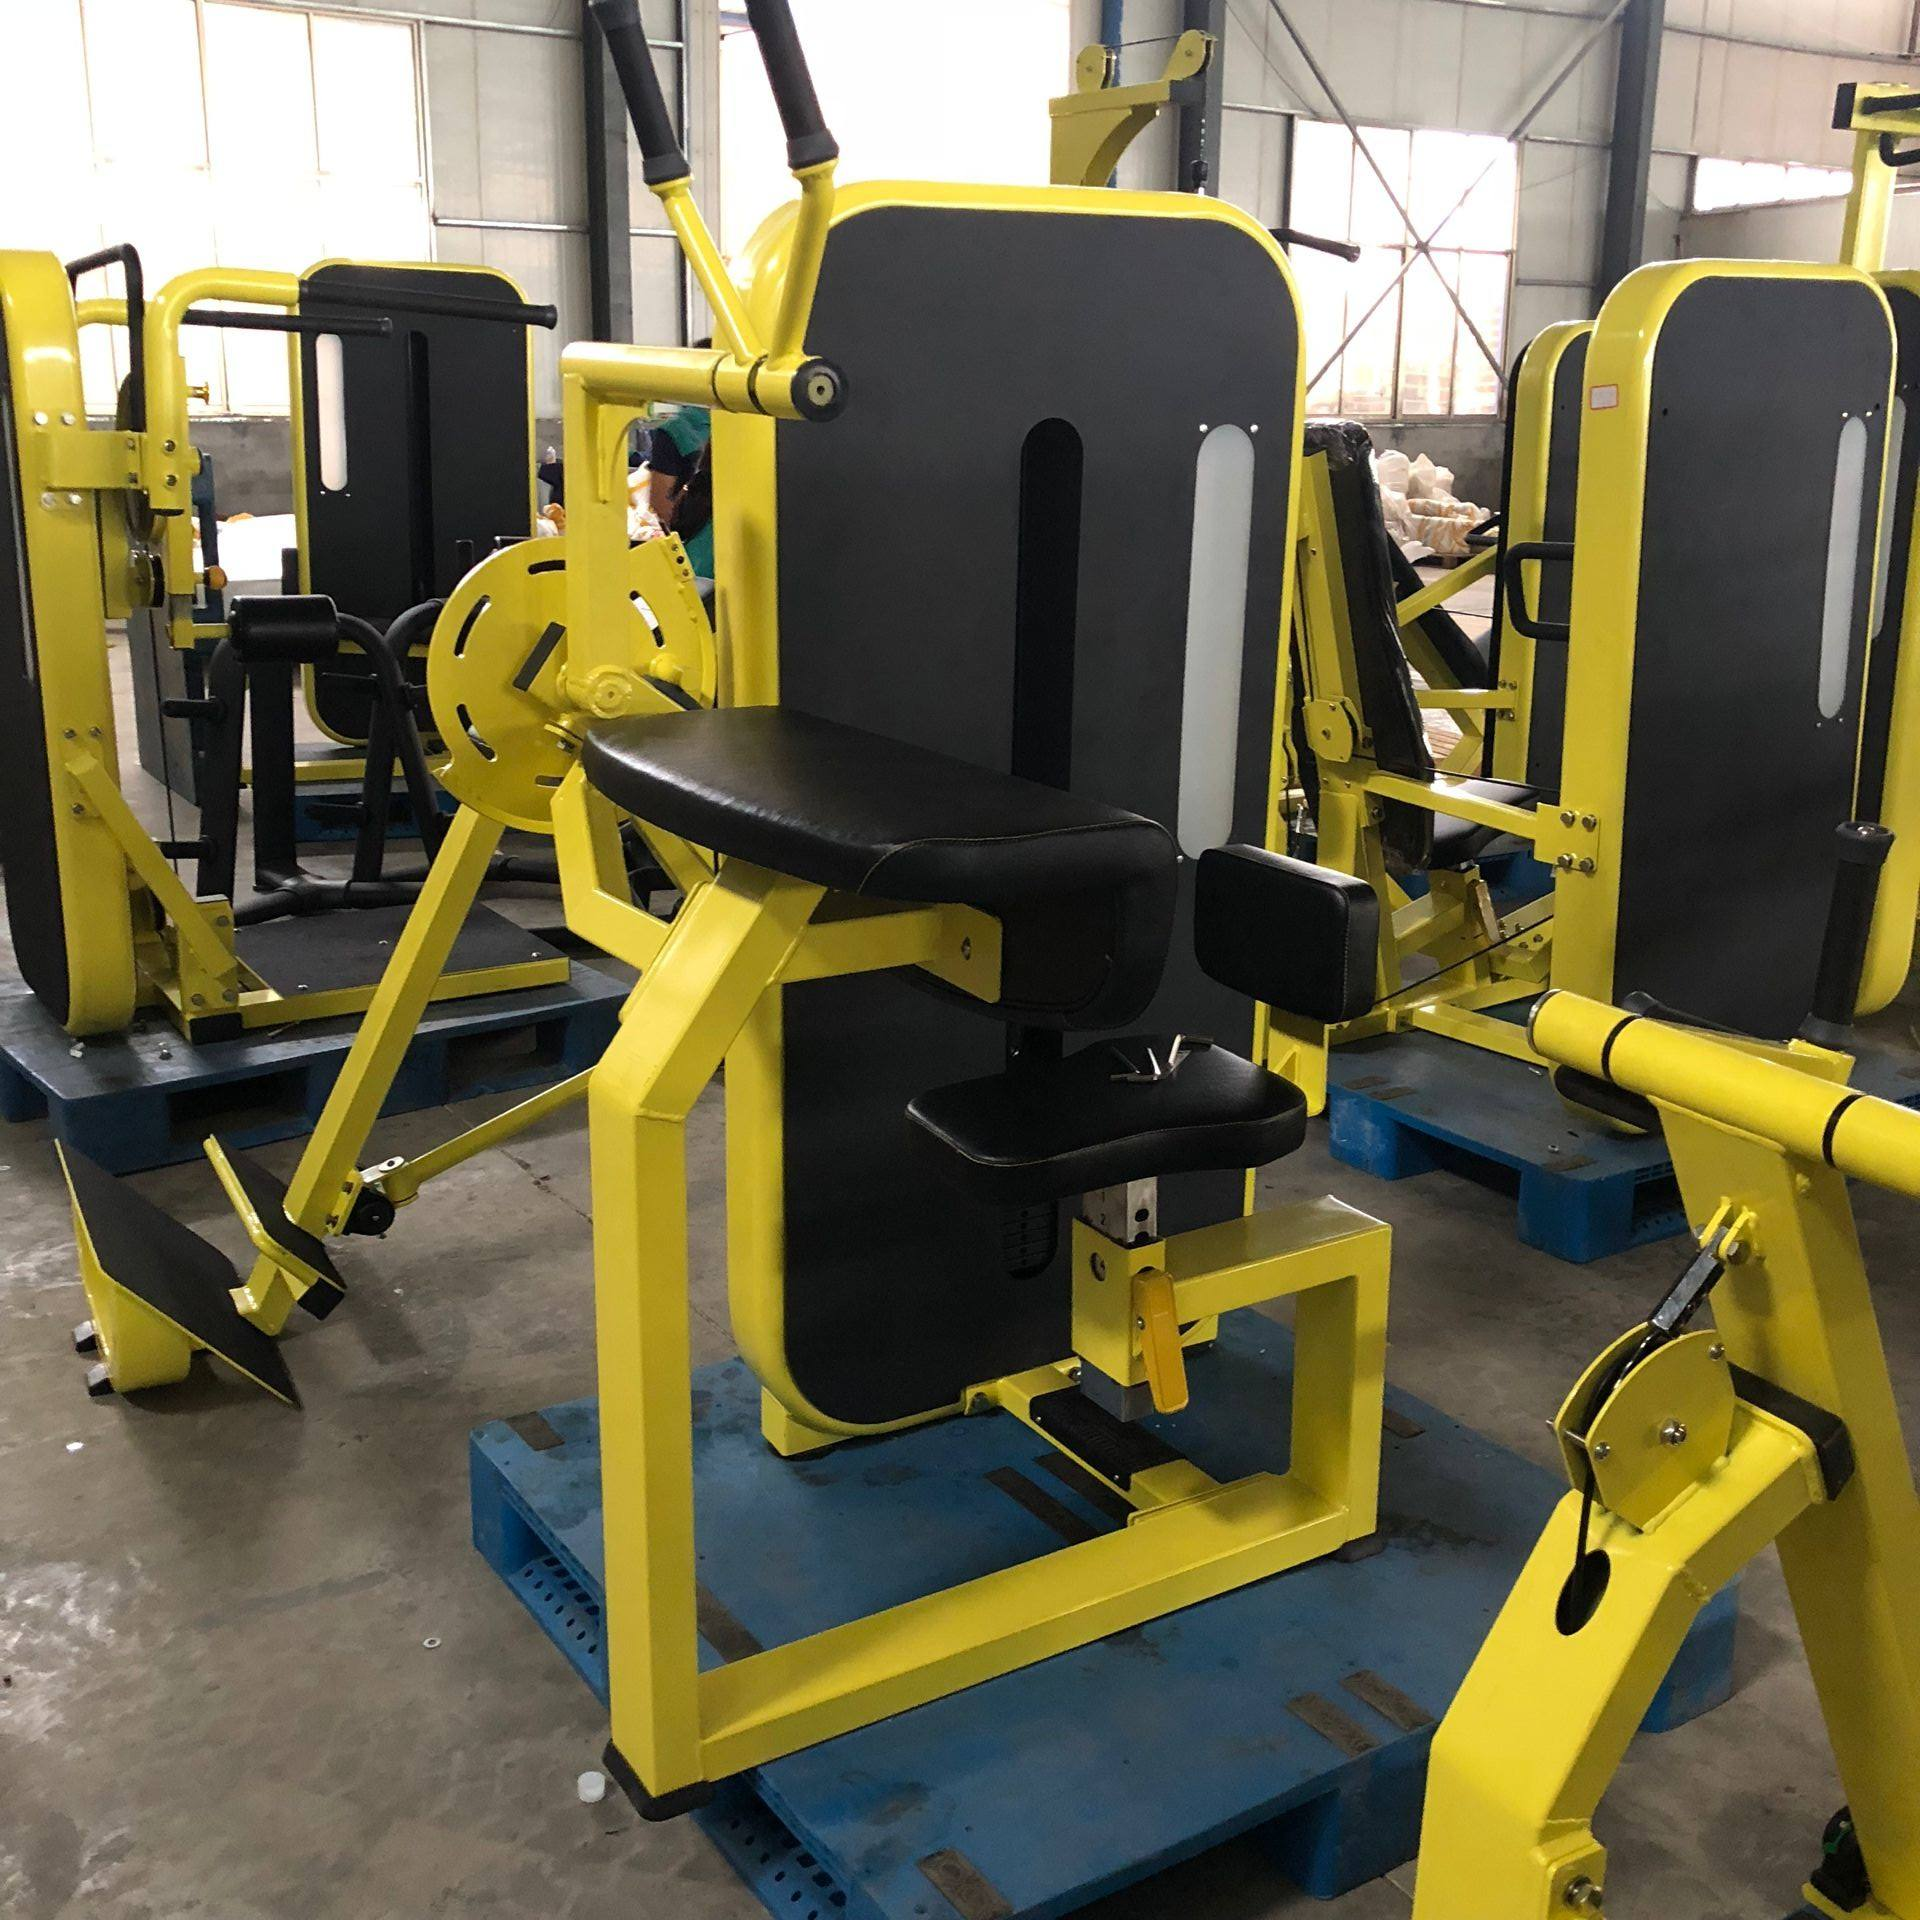 Rack [ Gym Equipment ] Equipment Functional Gym Multi Commercial Fitness Gym Equipment Fitness LZX Fitness MULTI FUNCTIONAL TRAINER